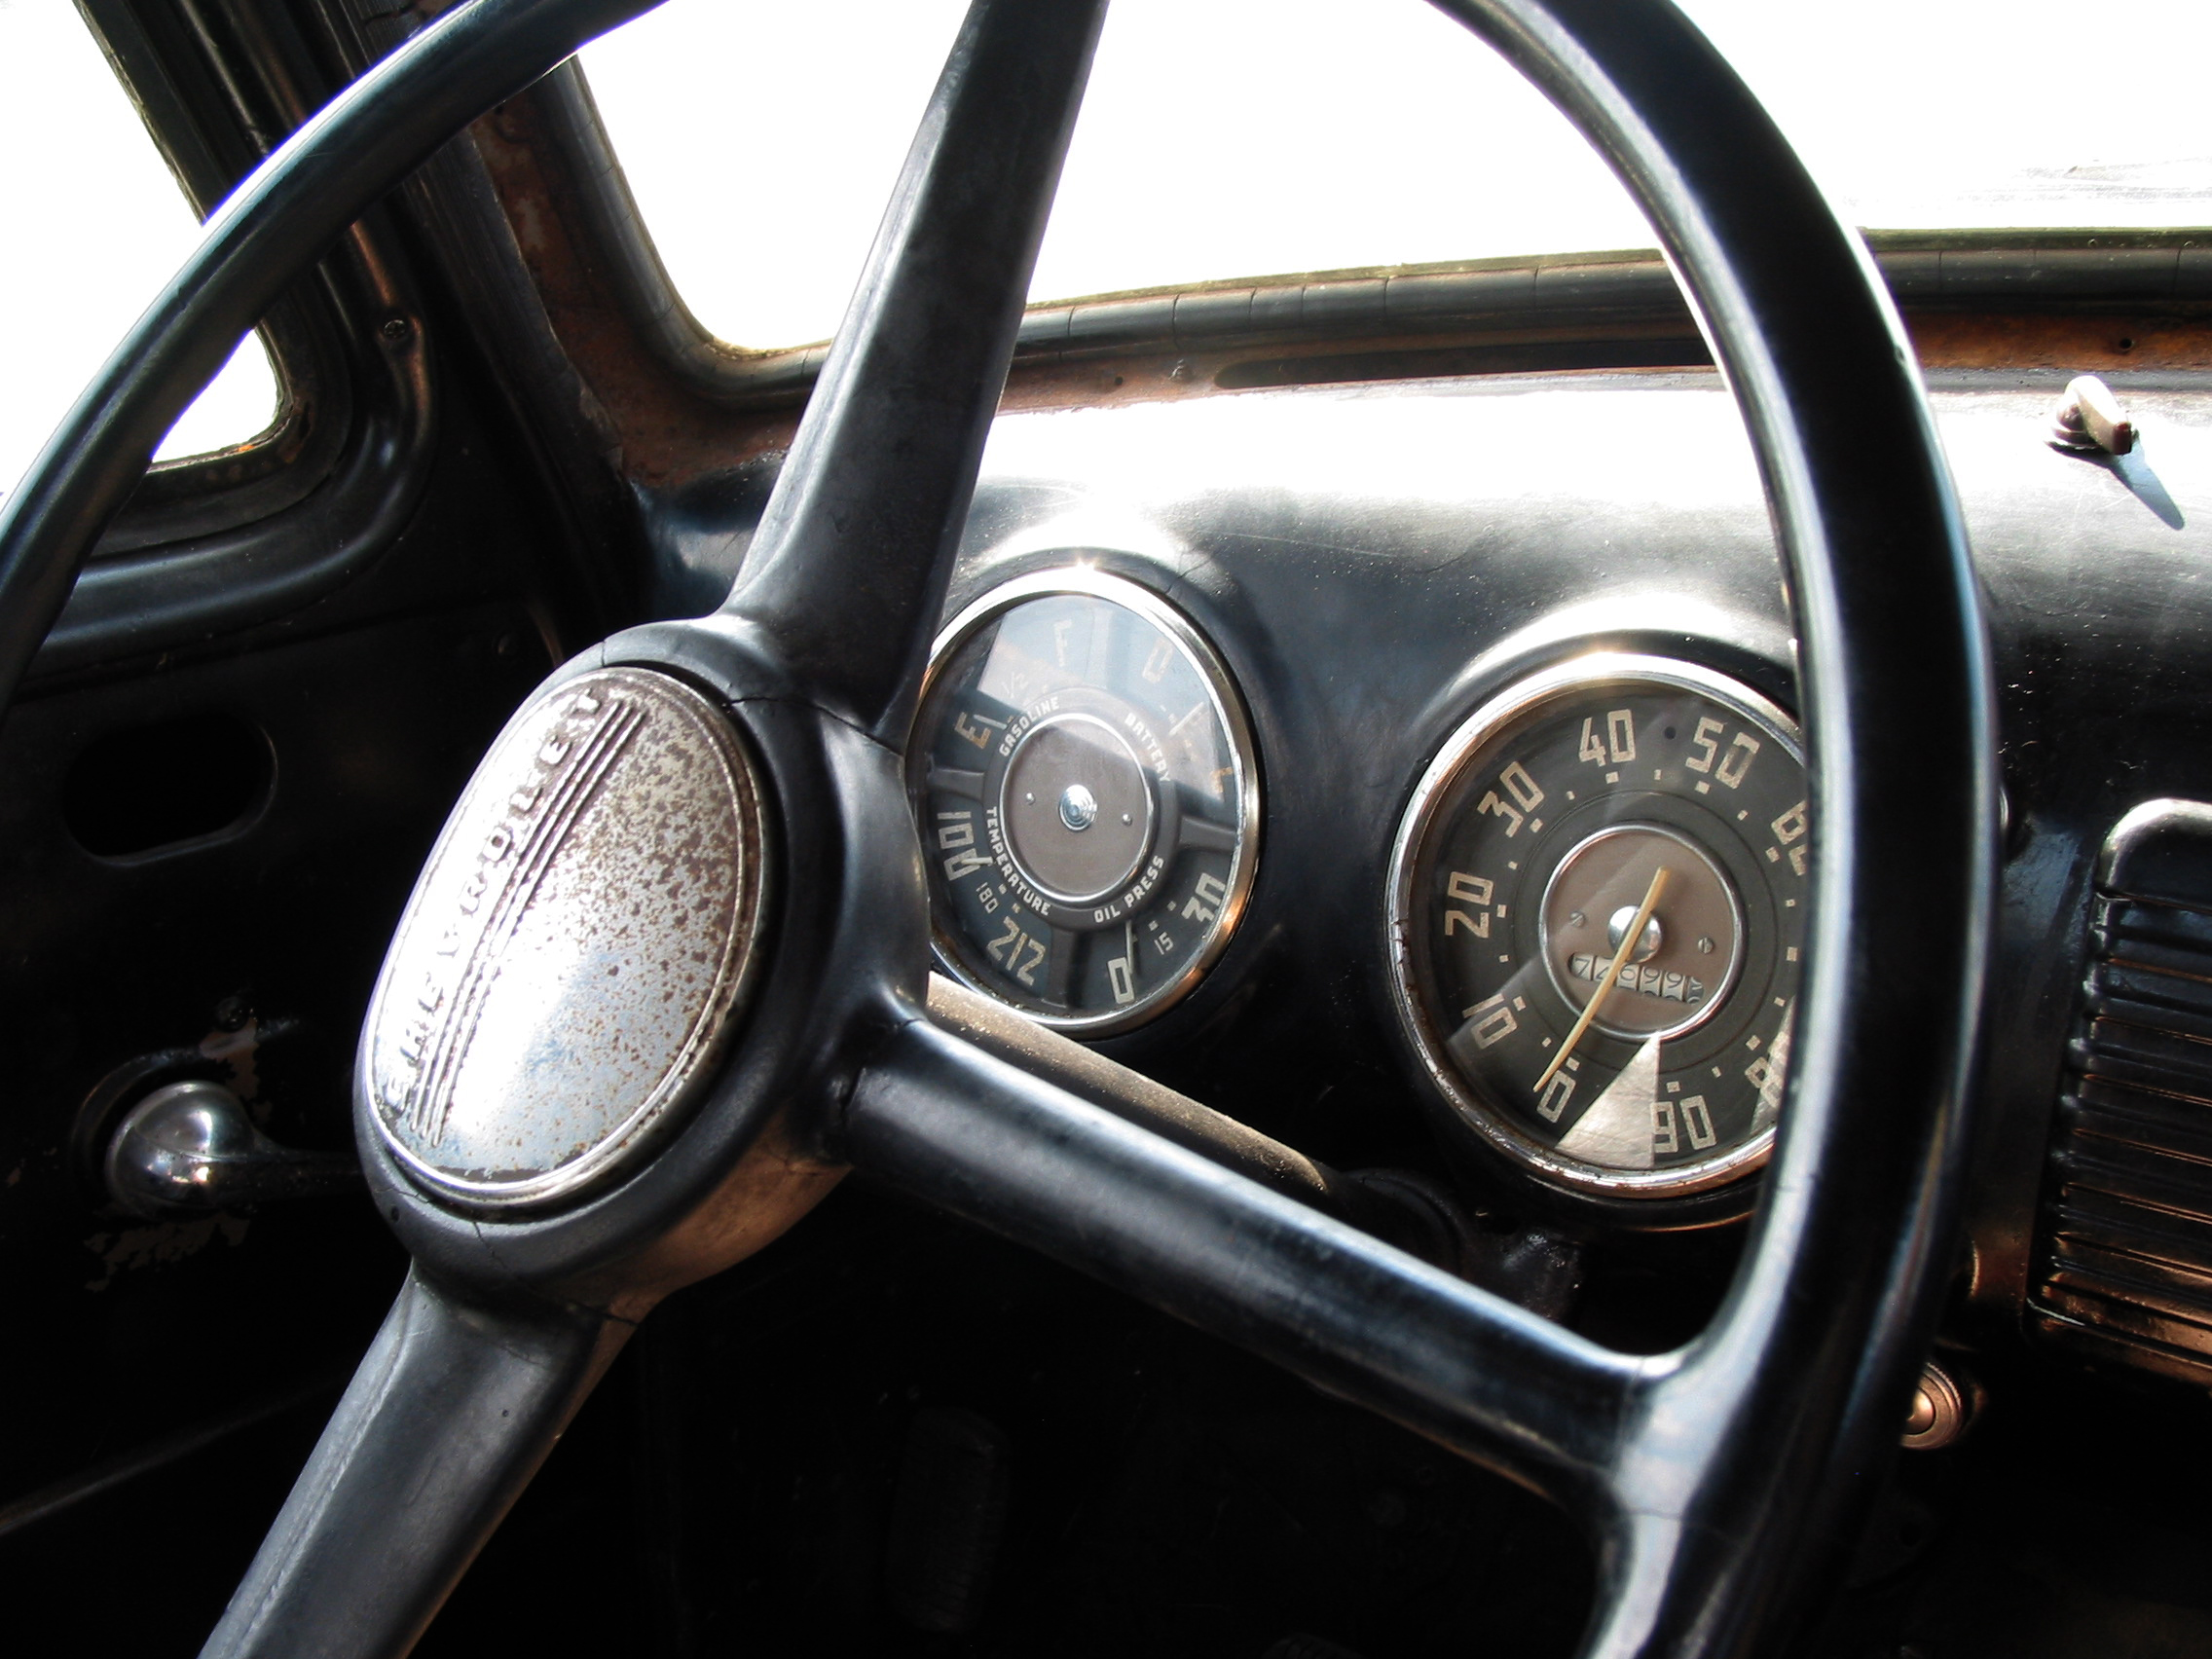 Steering Wheel, FREE Stock Photo, Image, Picture: Antique